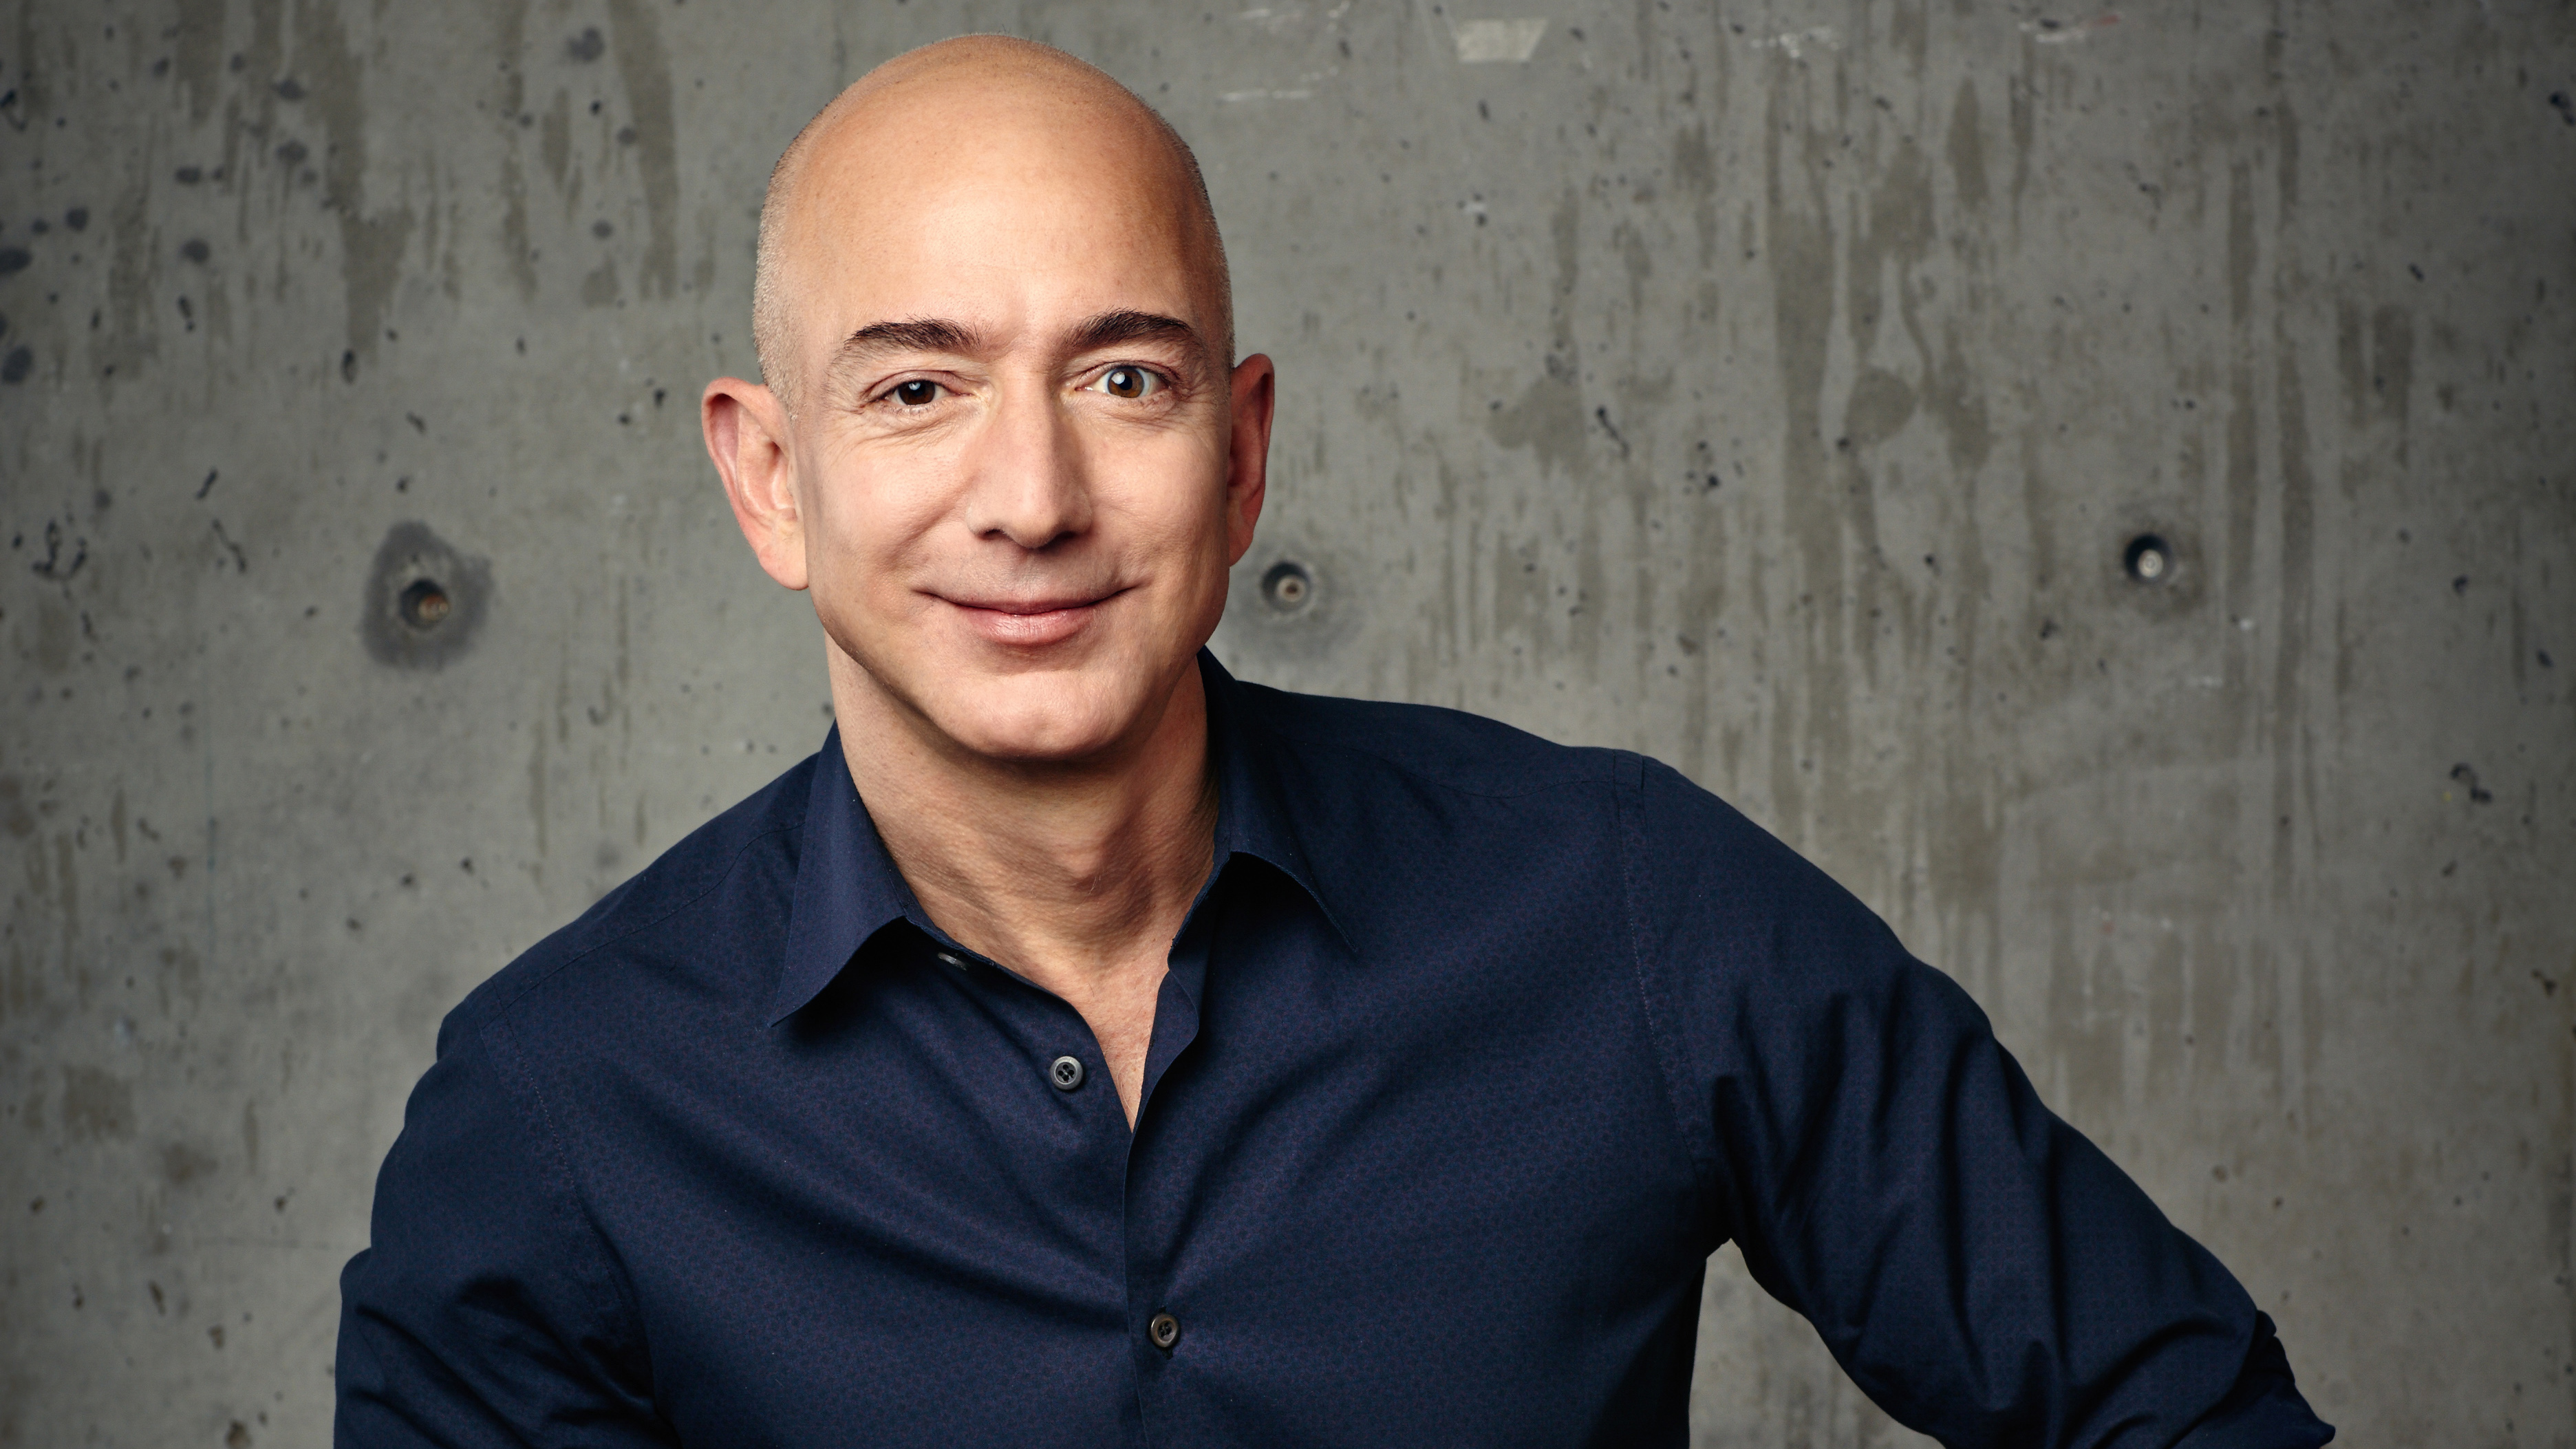 jeff bezos - richest person in the world 2020